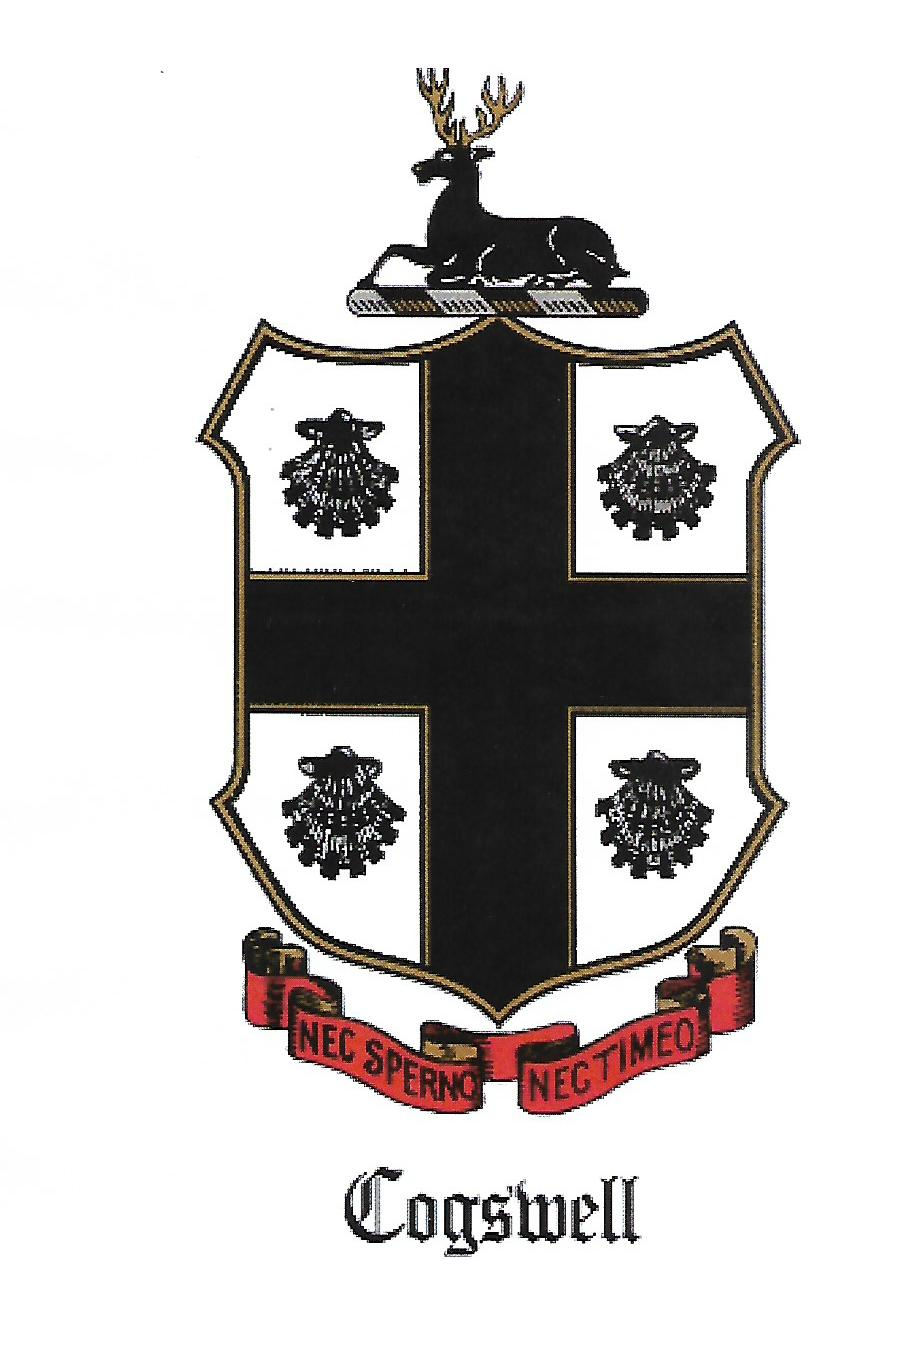 Cogswell Crest